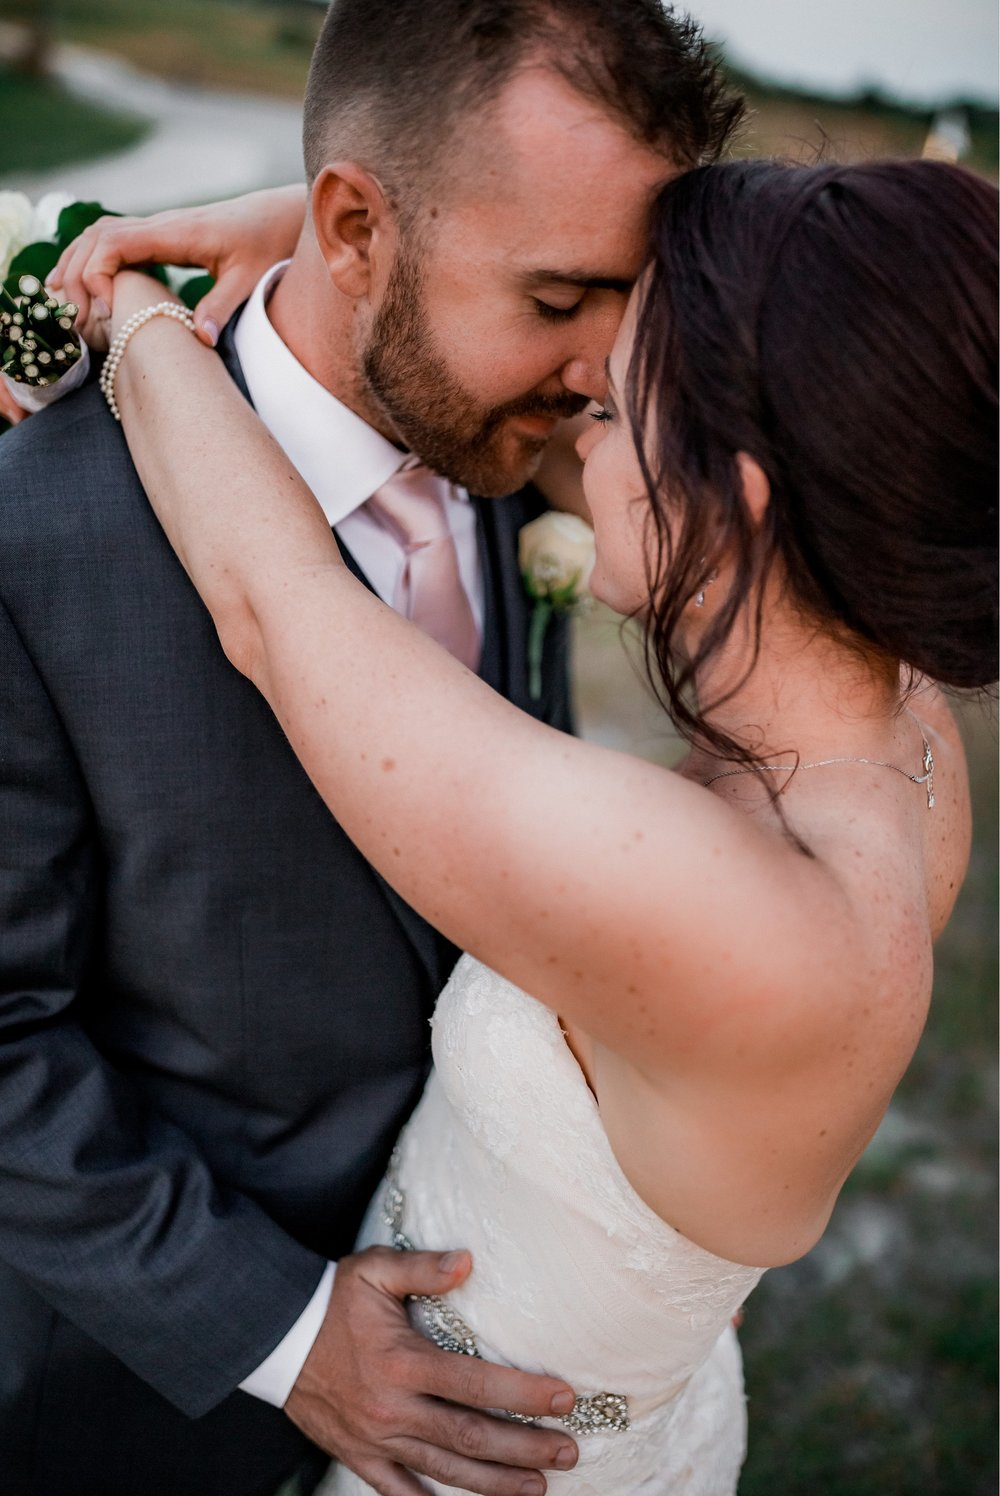 Romantic Pink Spring Wedding - Katie + Joe by Orlando Wedding Photographer Shaina DeCiryan 99.jpg